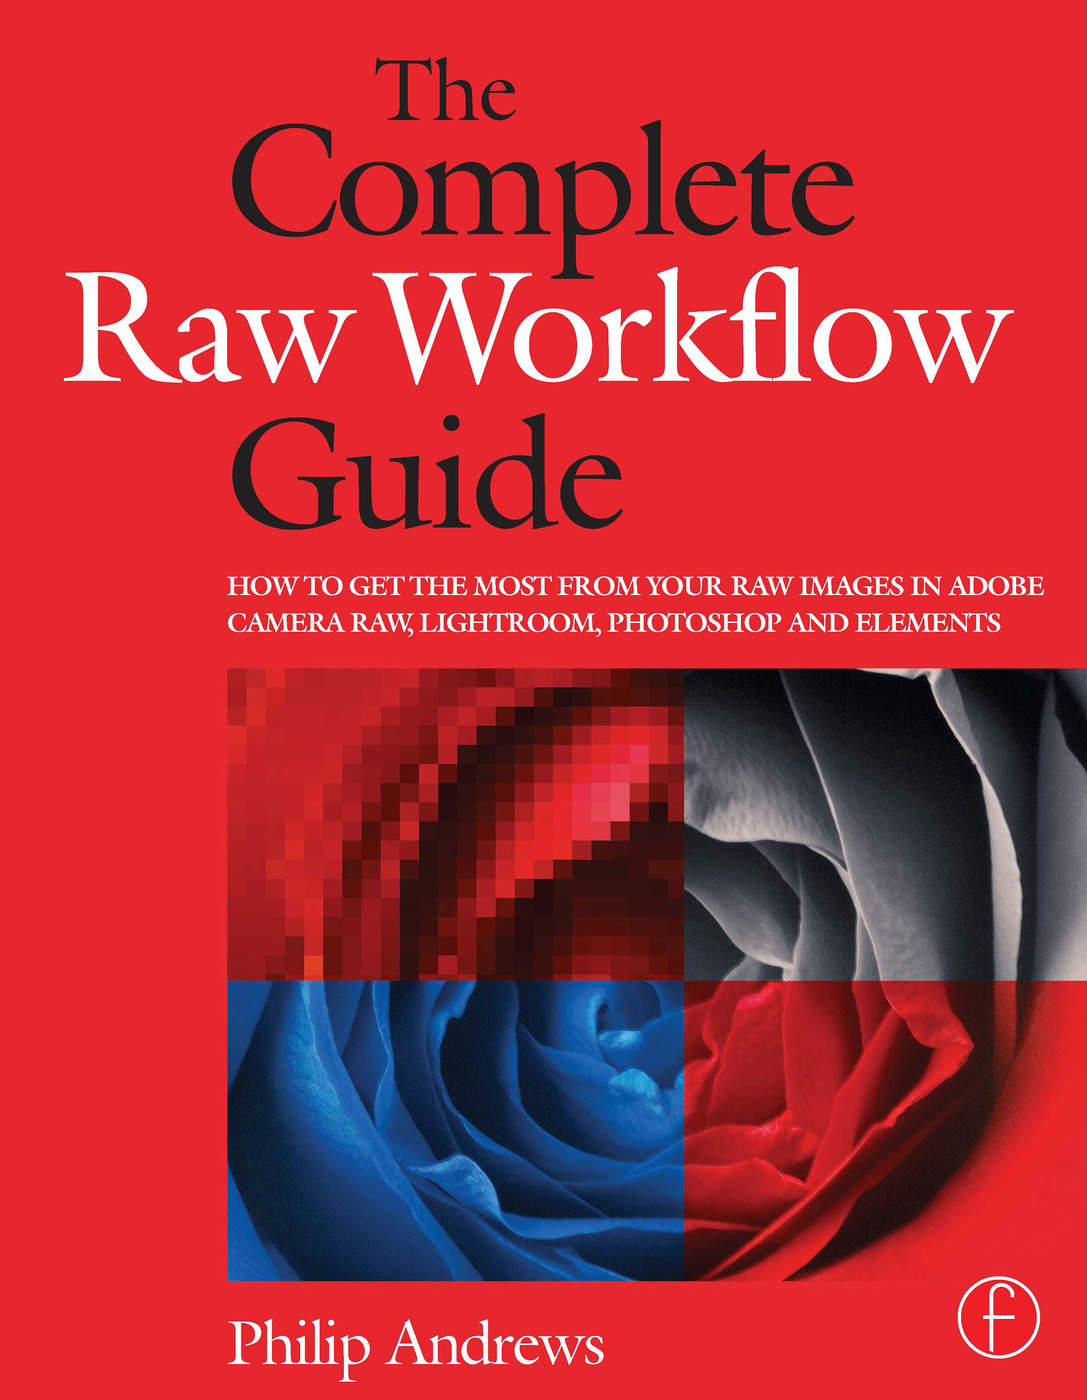 The Complete Raw Workflow Guide: How to get the most from your raw images in Adobe Camera Raw, Lightroom, Photoshop, and Elements book cover